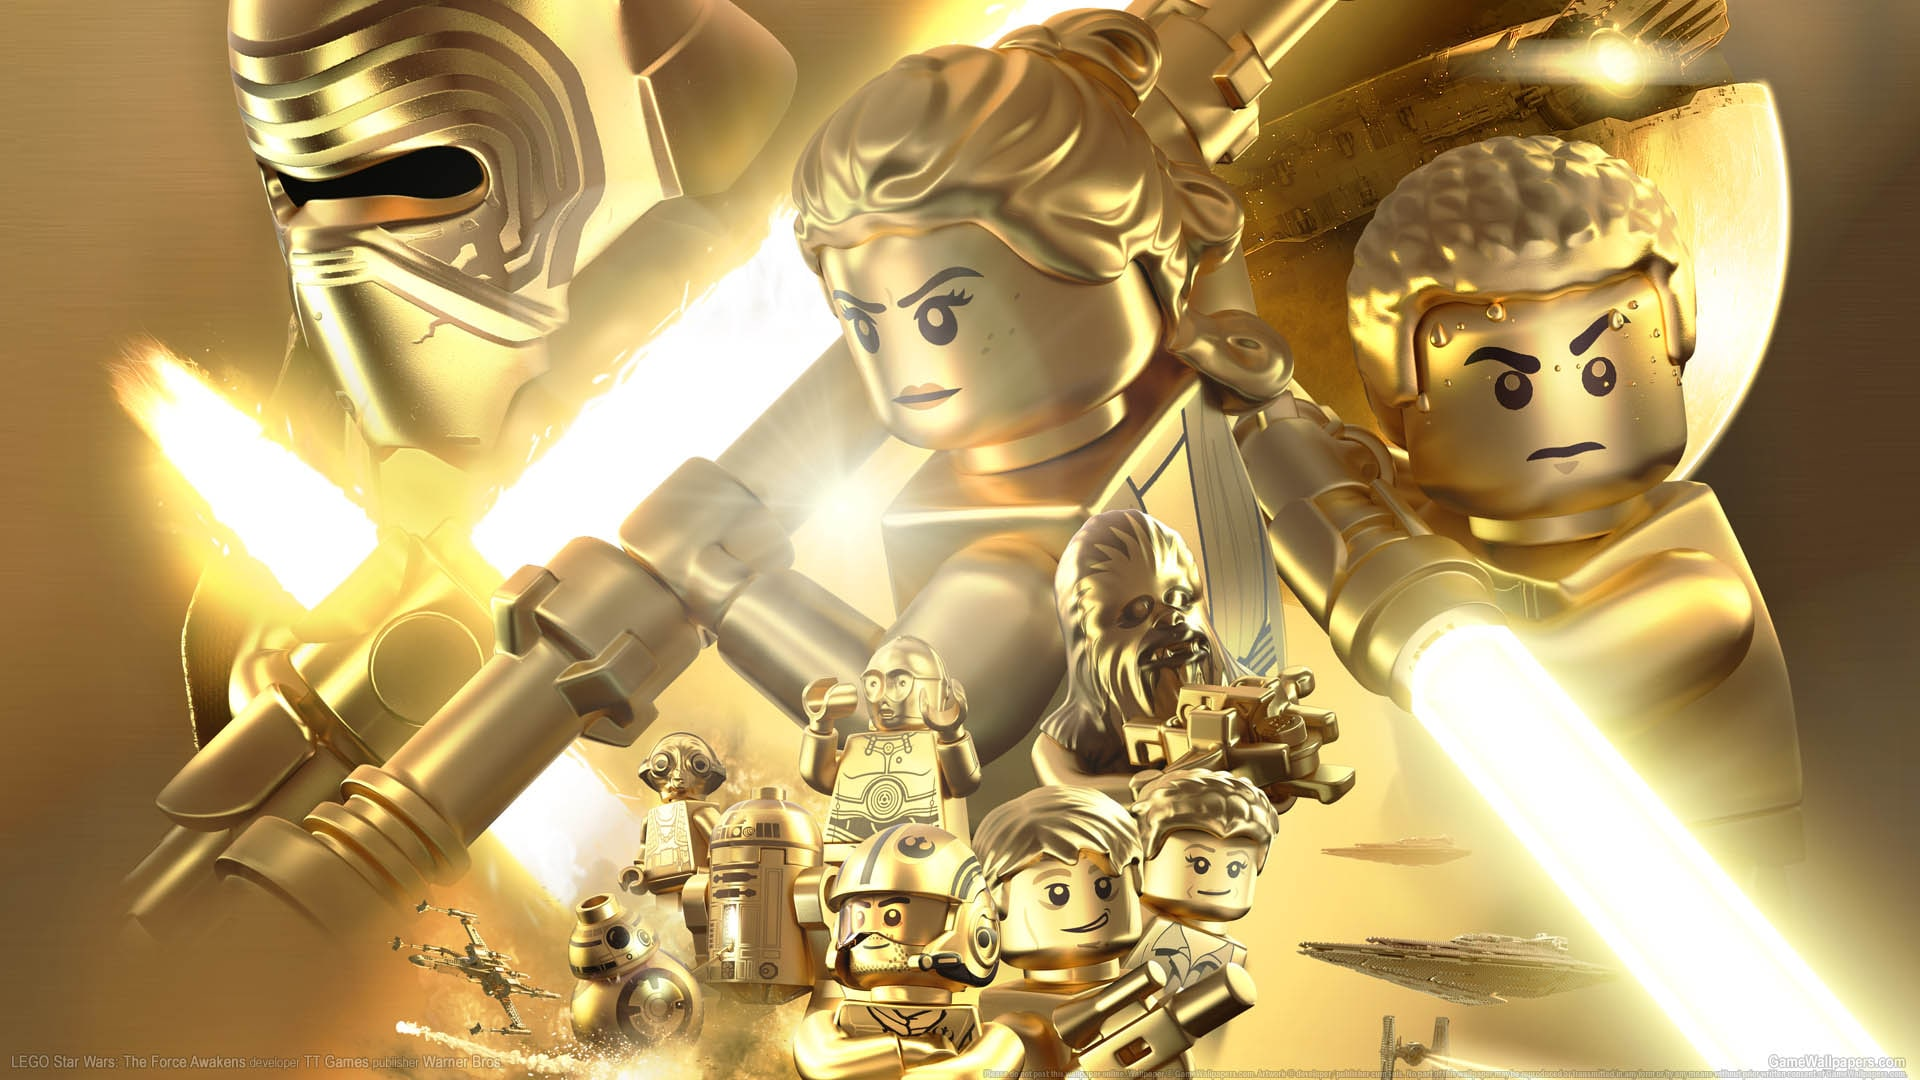 LEGO Star Wars: The Force Awakens Desktop wallpapers